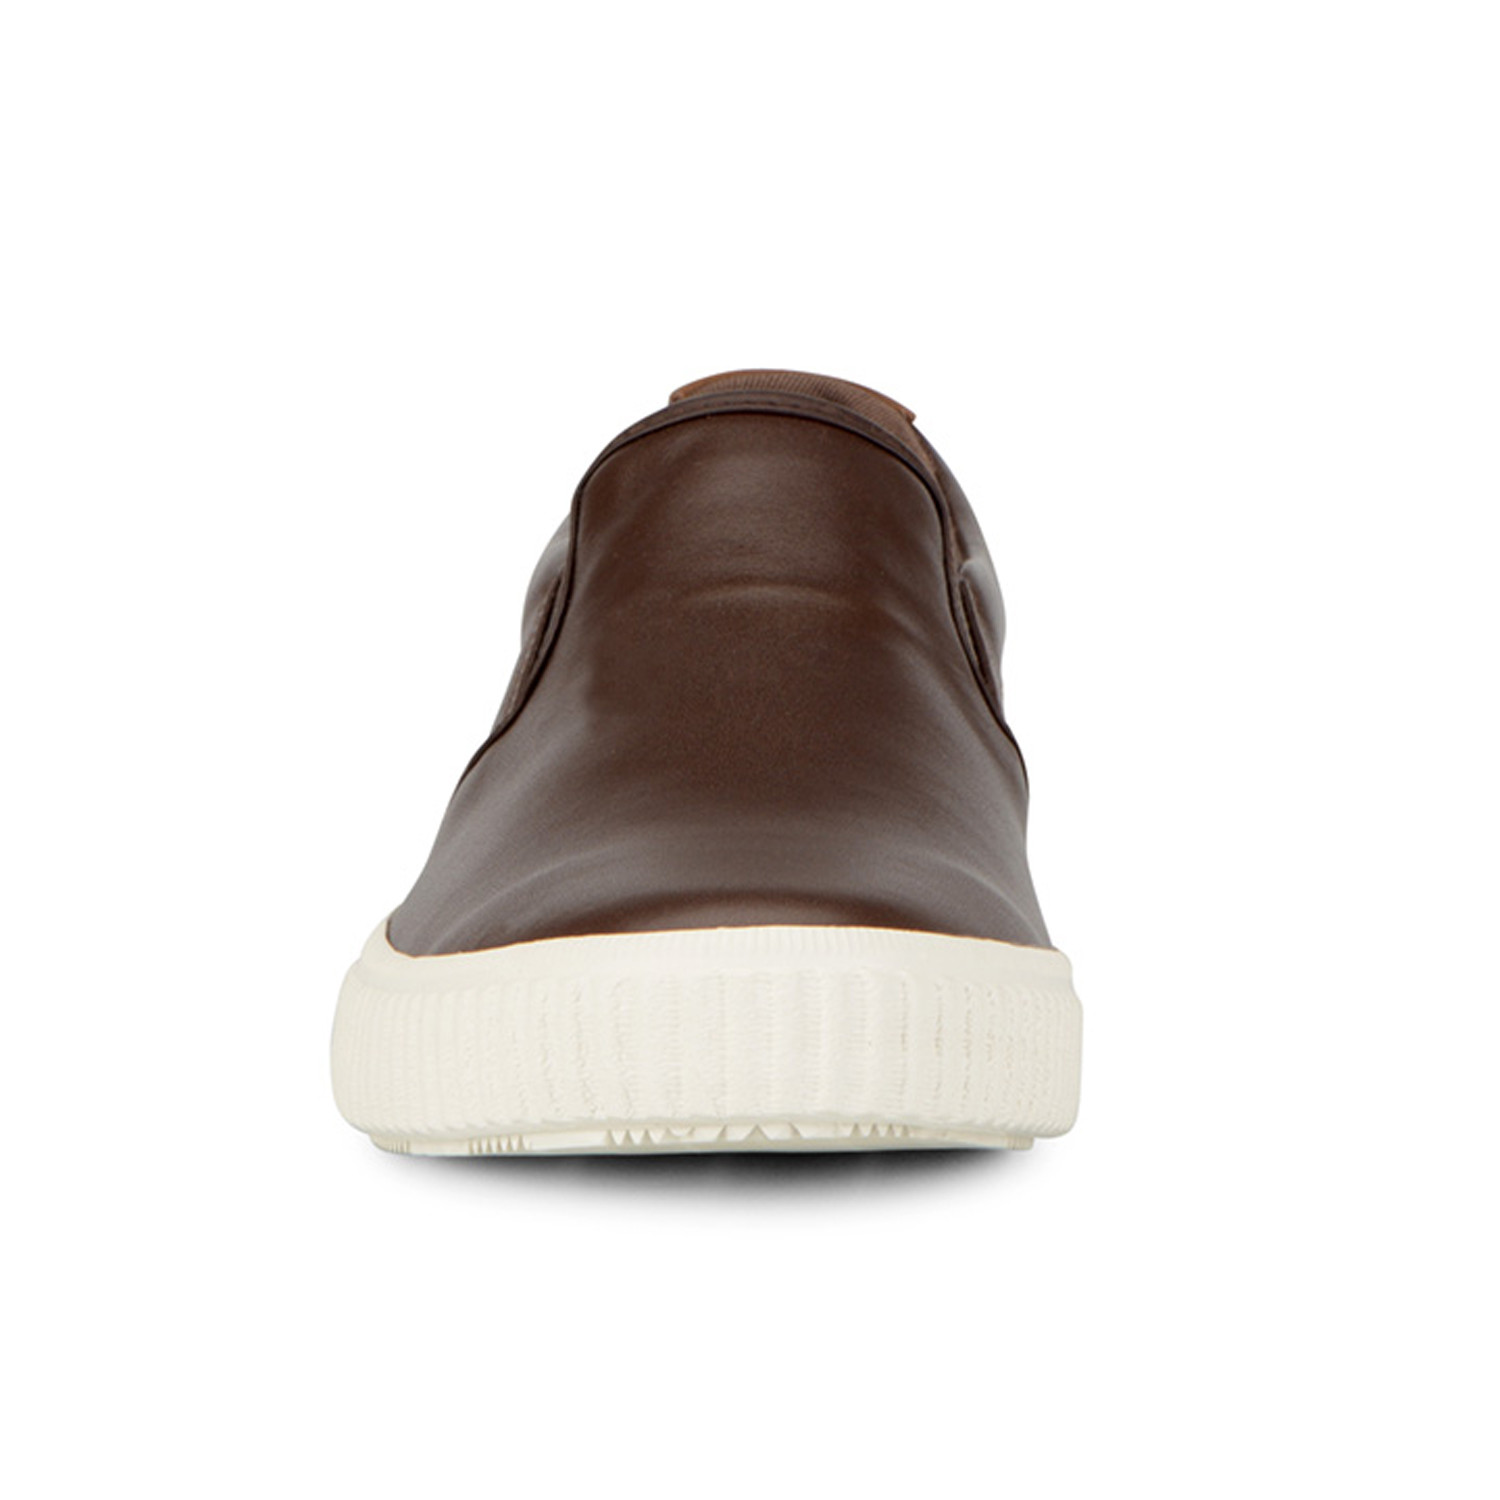 7174f5de4f7f Riverside    Brown + Off White (US  12) - Andrew Marc - Touch of Modern